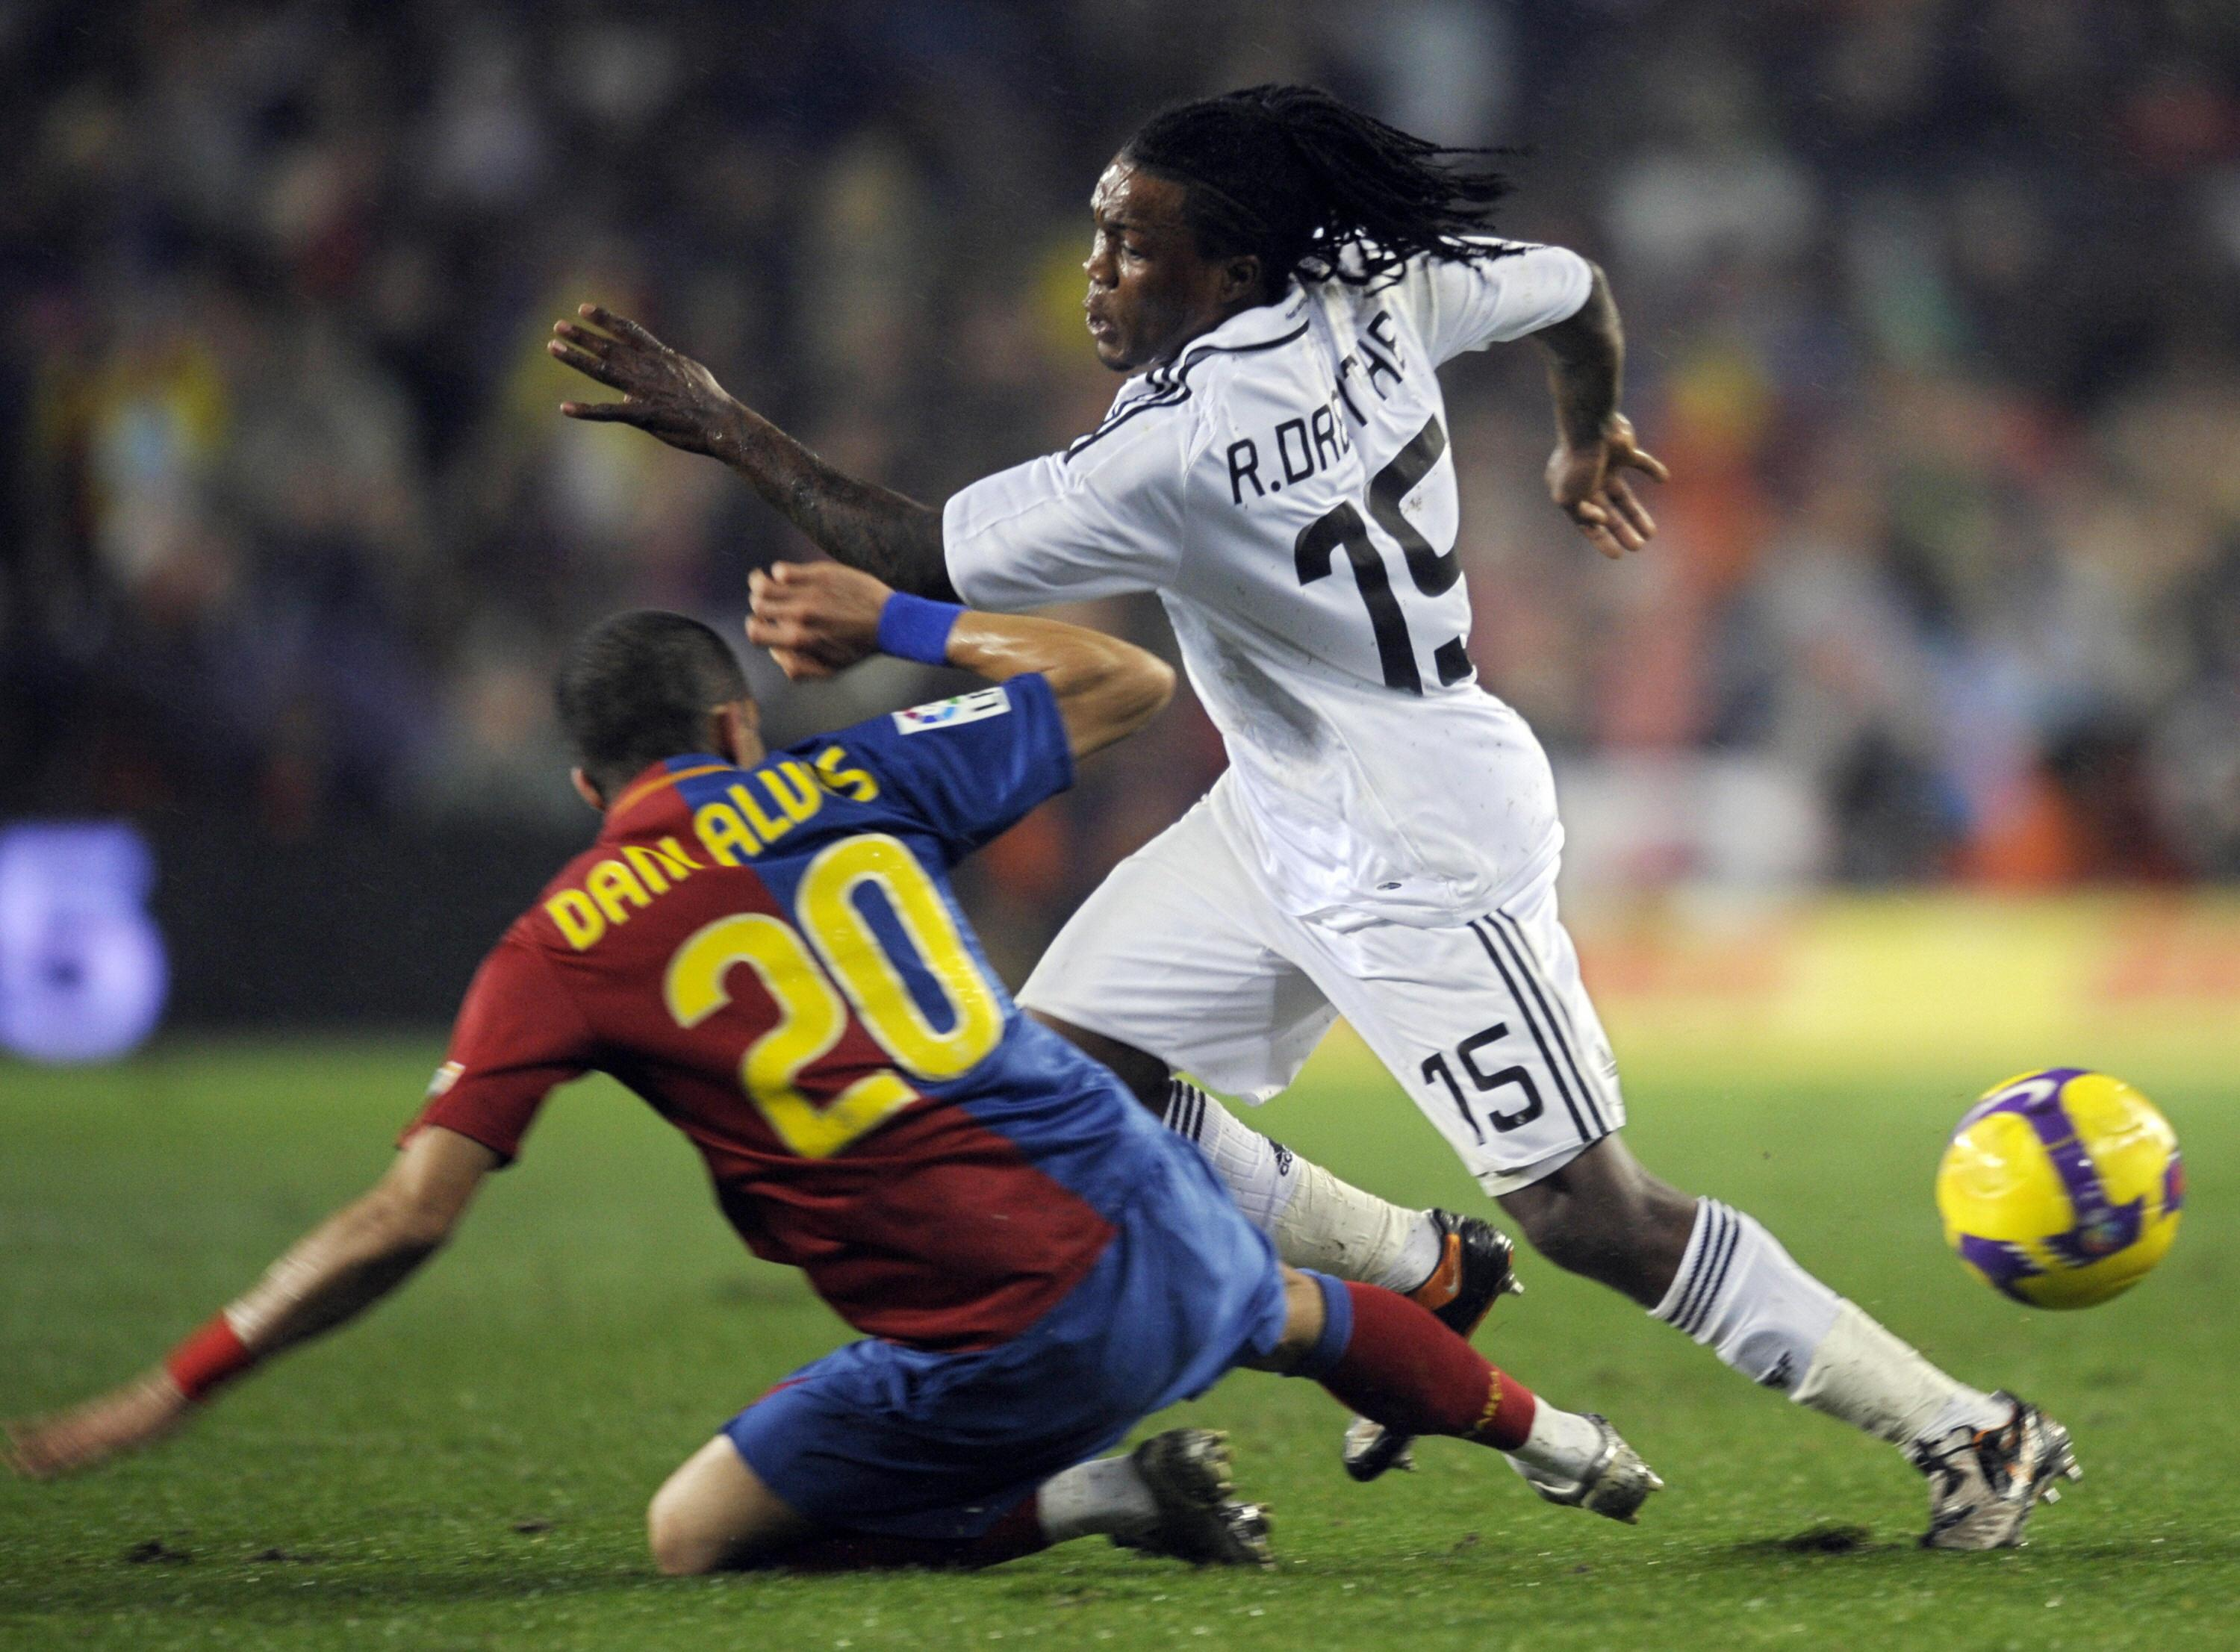 Hacking down Royston Drenthe in his first El Clasico